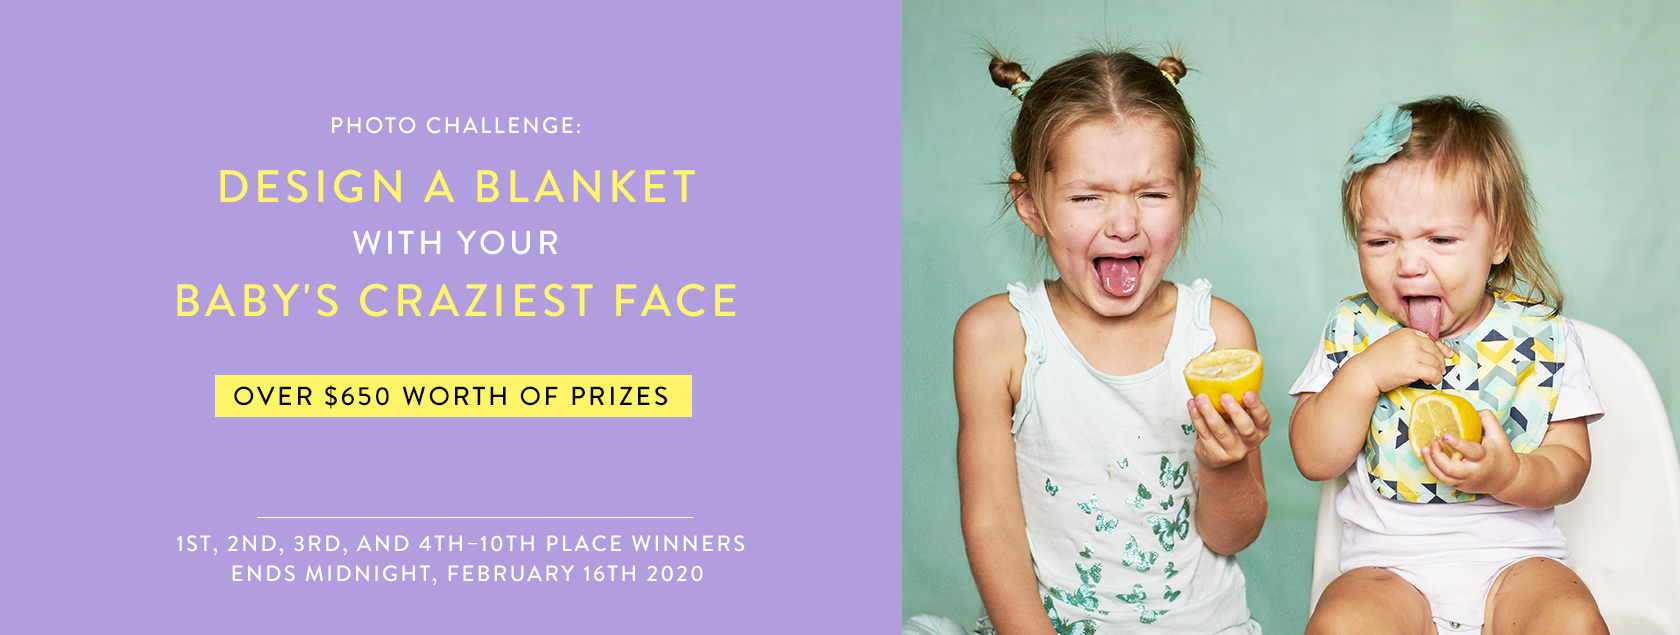 Baby's Craziest Face Photo Challenge